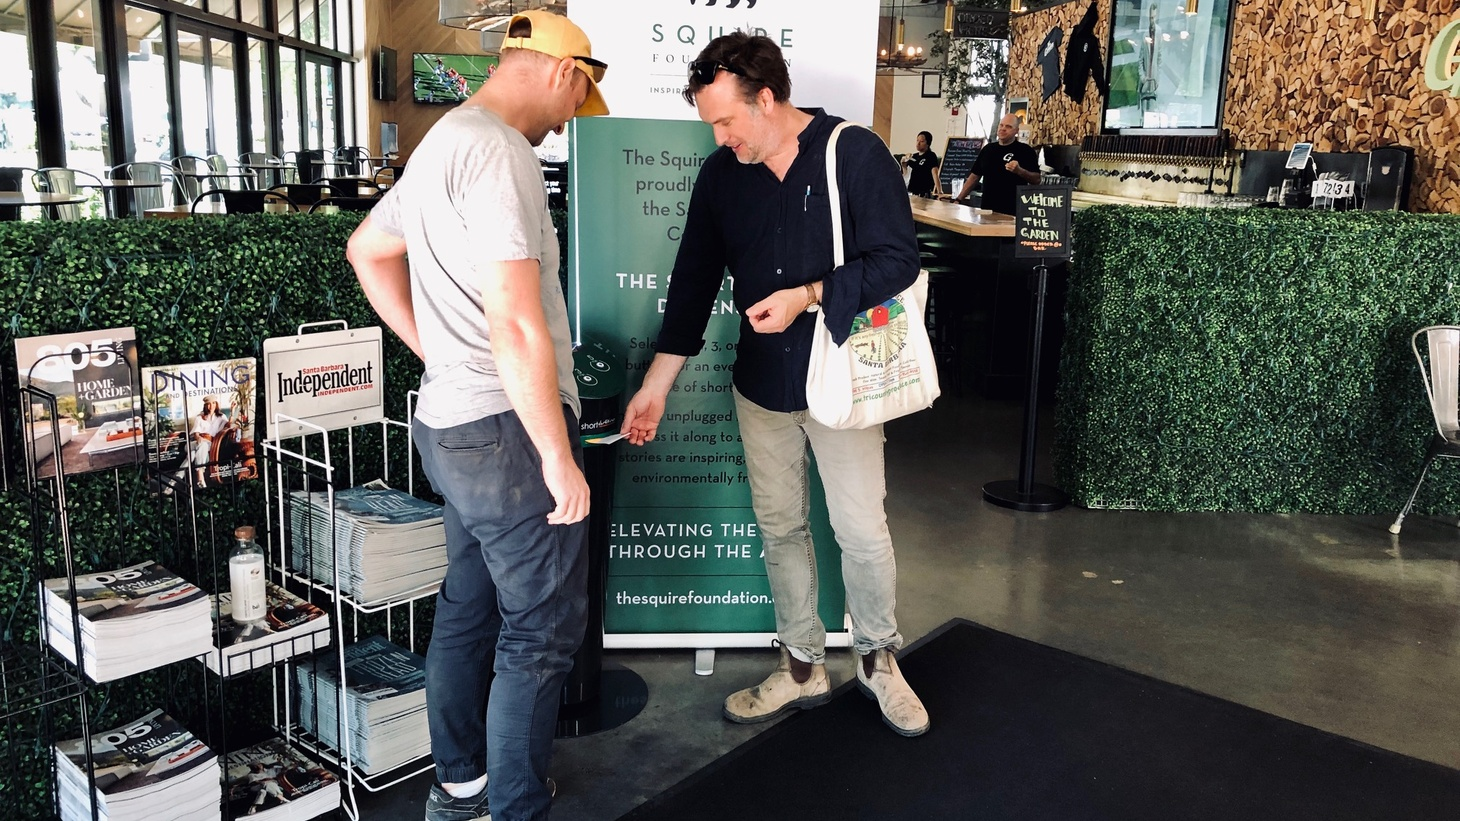 Dave Kilpatrick and Patrick Melroy wait for their on-the-go literature at the Short Edition Story Dispenser at the Santa Barbara Public Market.